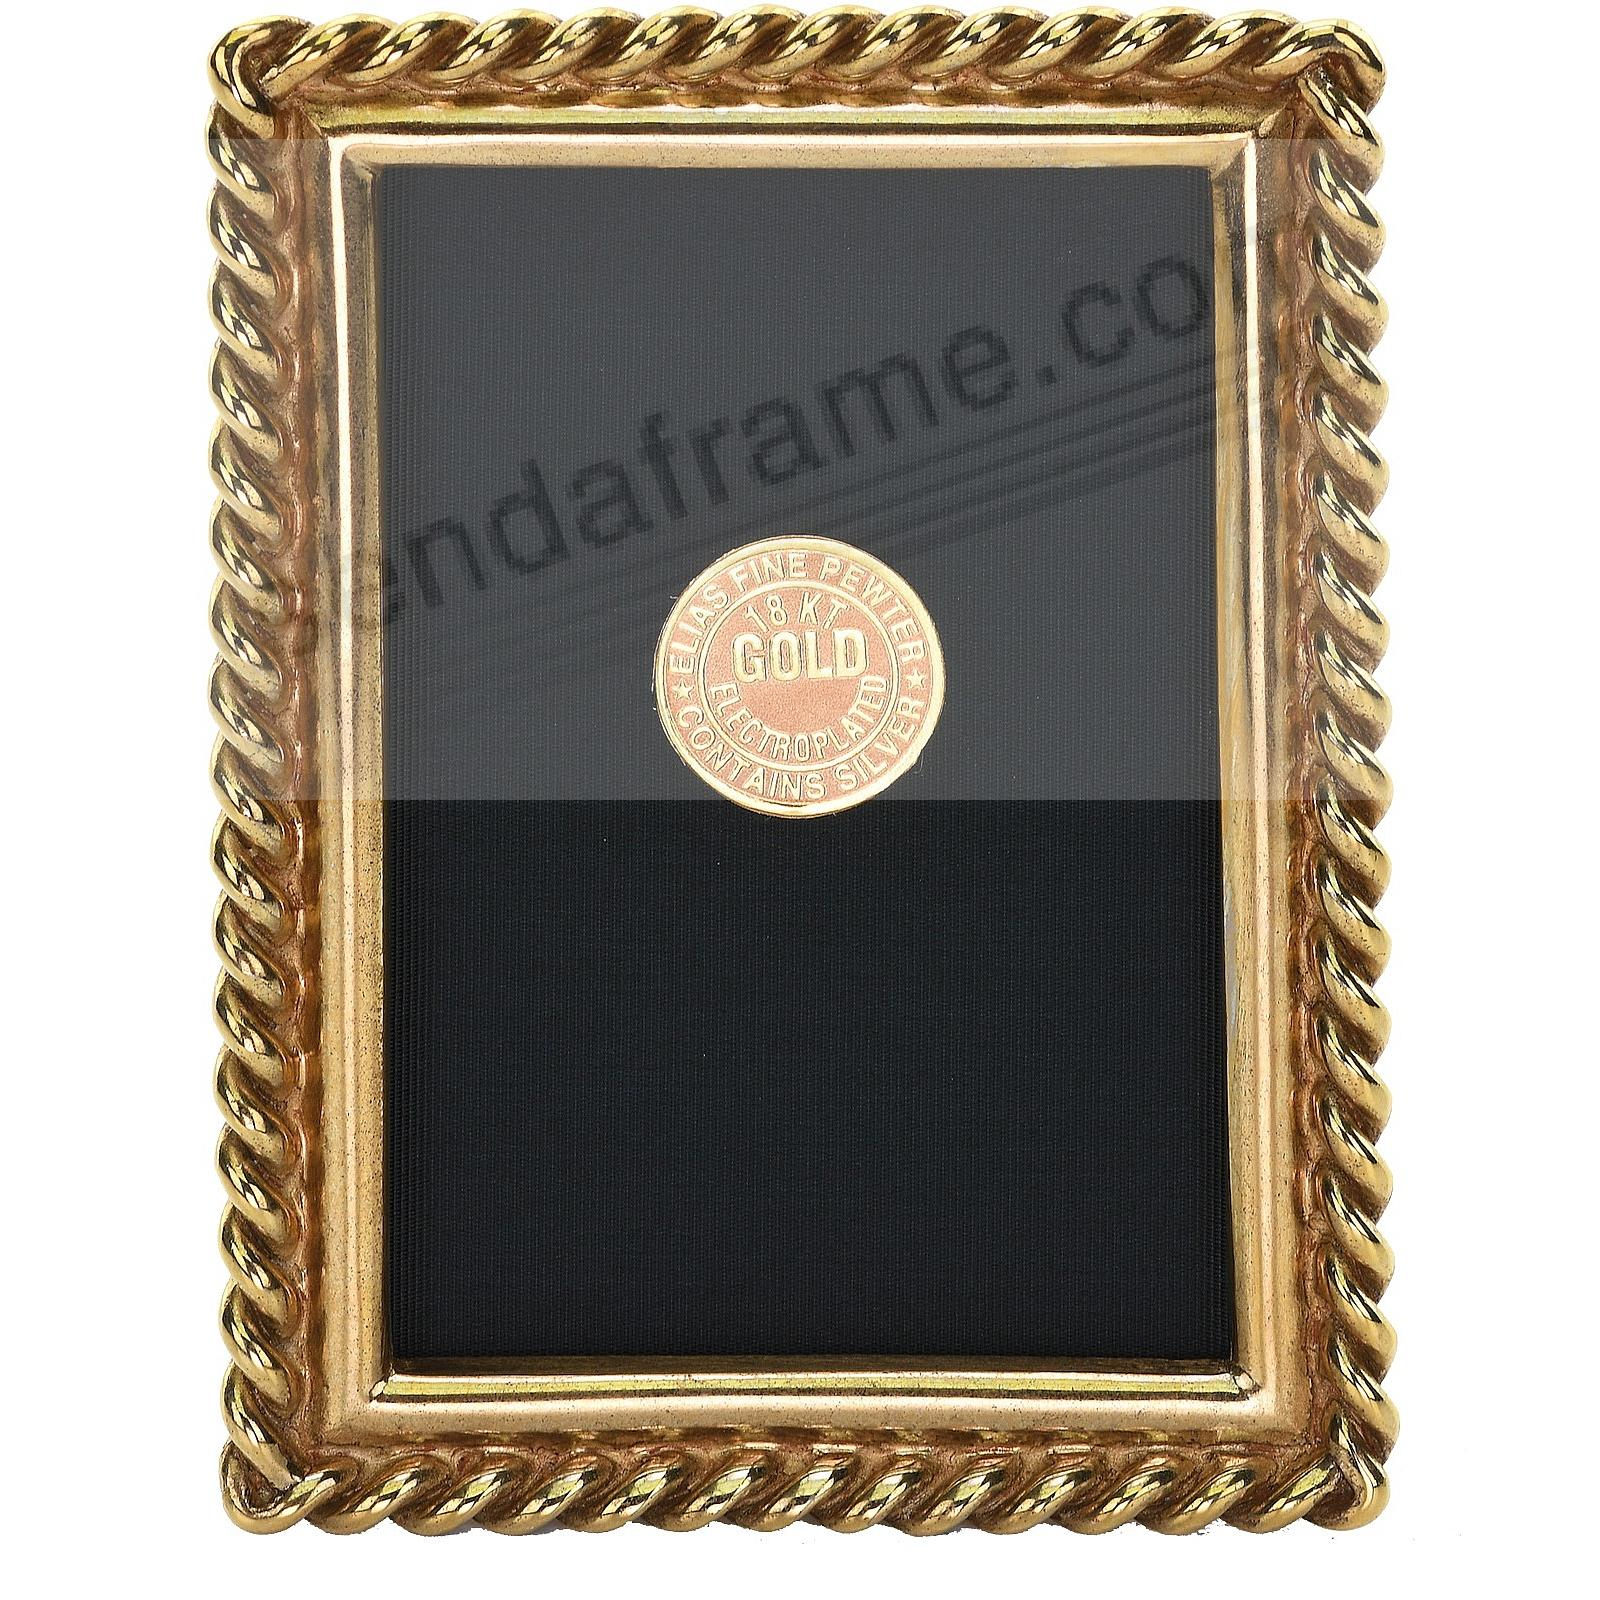 CHAIN 18kt Museum Gold over Pewter frame 2½x3½ by Elias Artmetal®